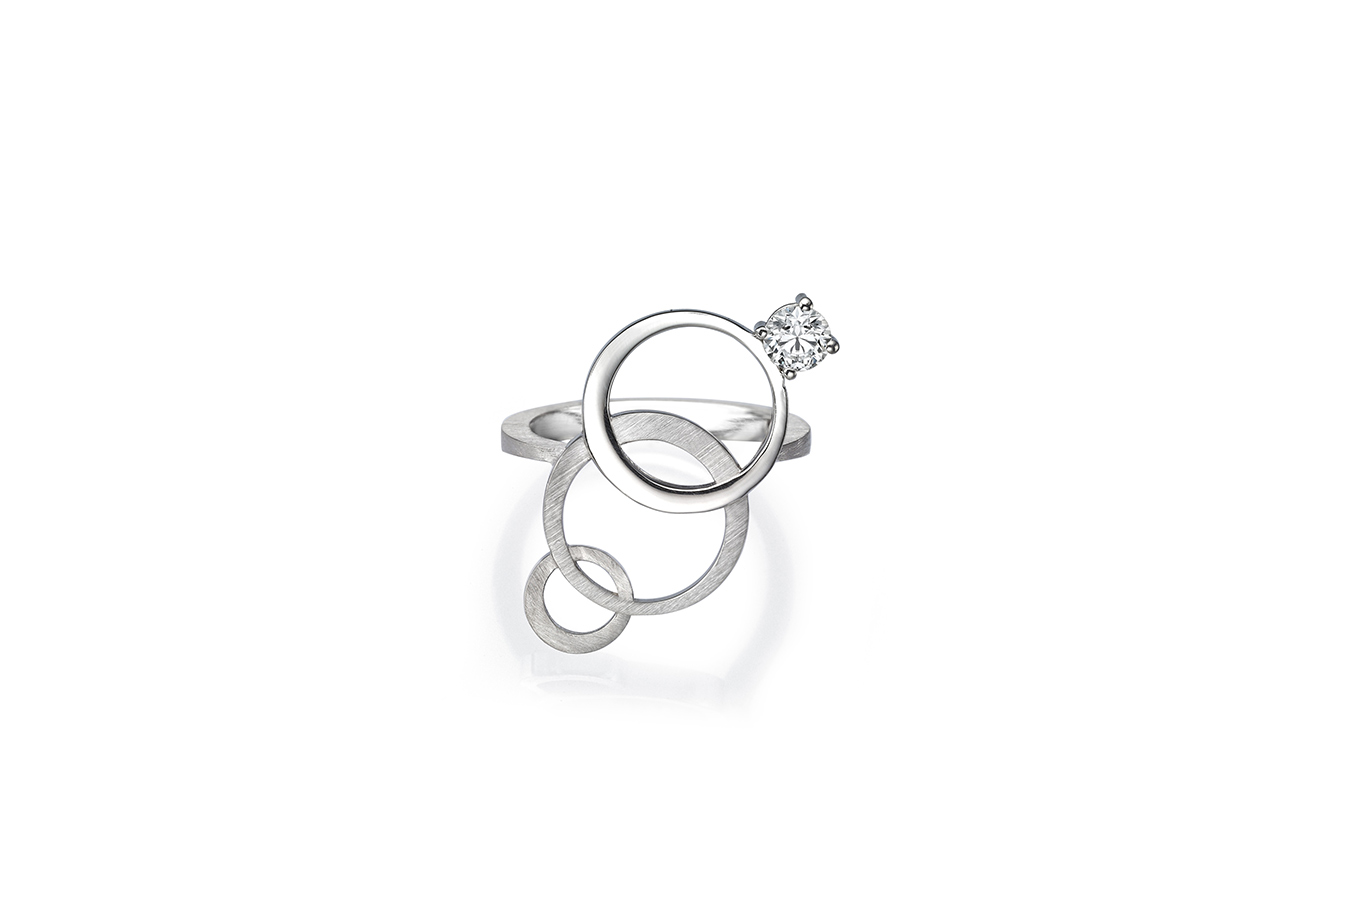 STAGGER RING 18K WHITE GOLD 0.30 CT DIAMOND